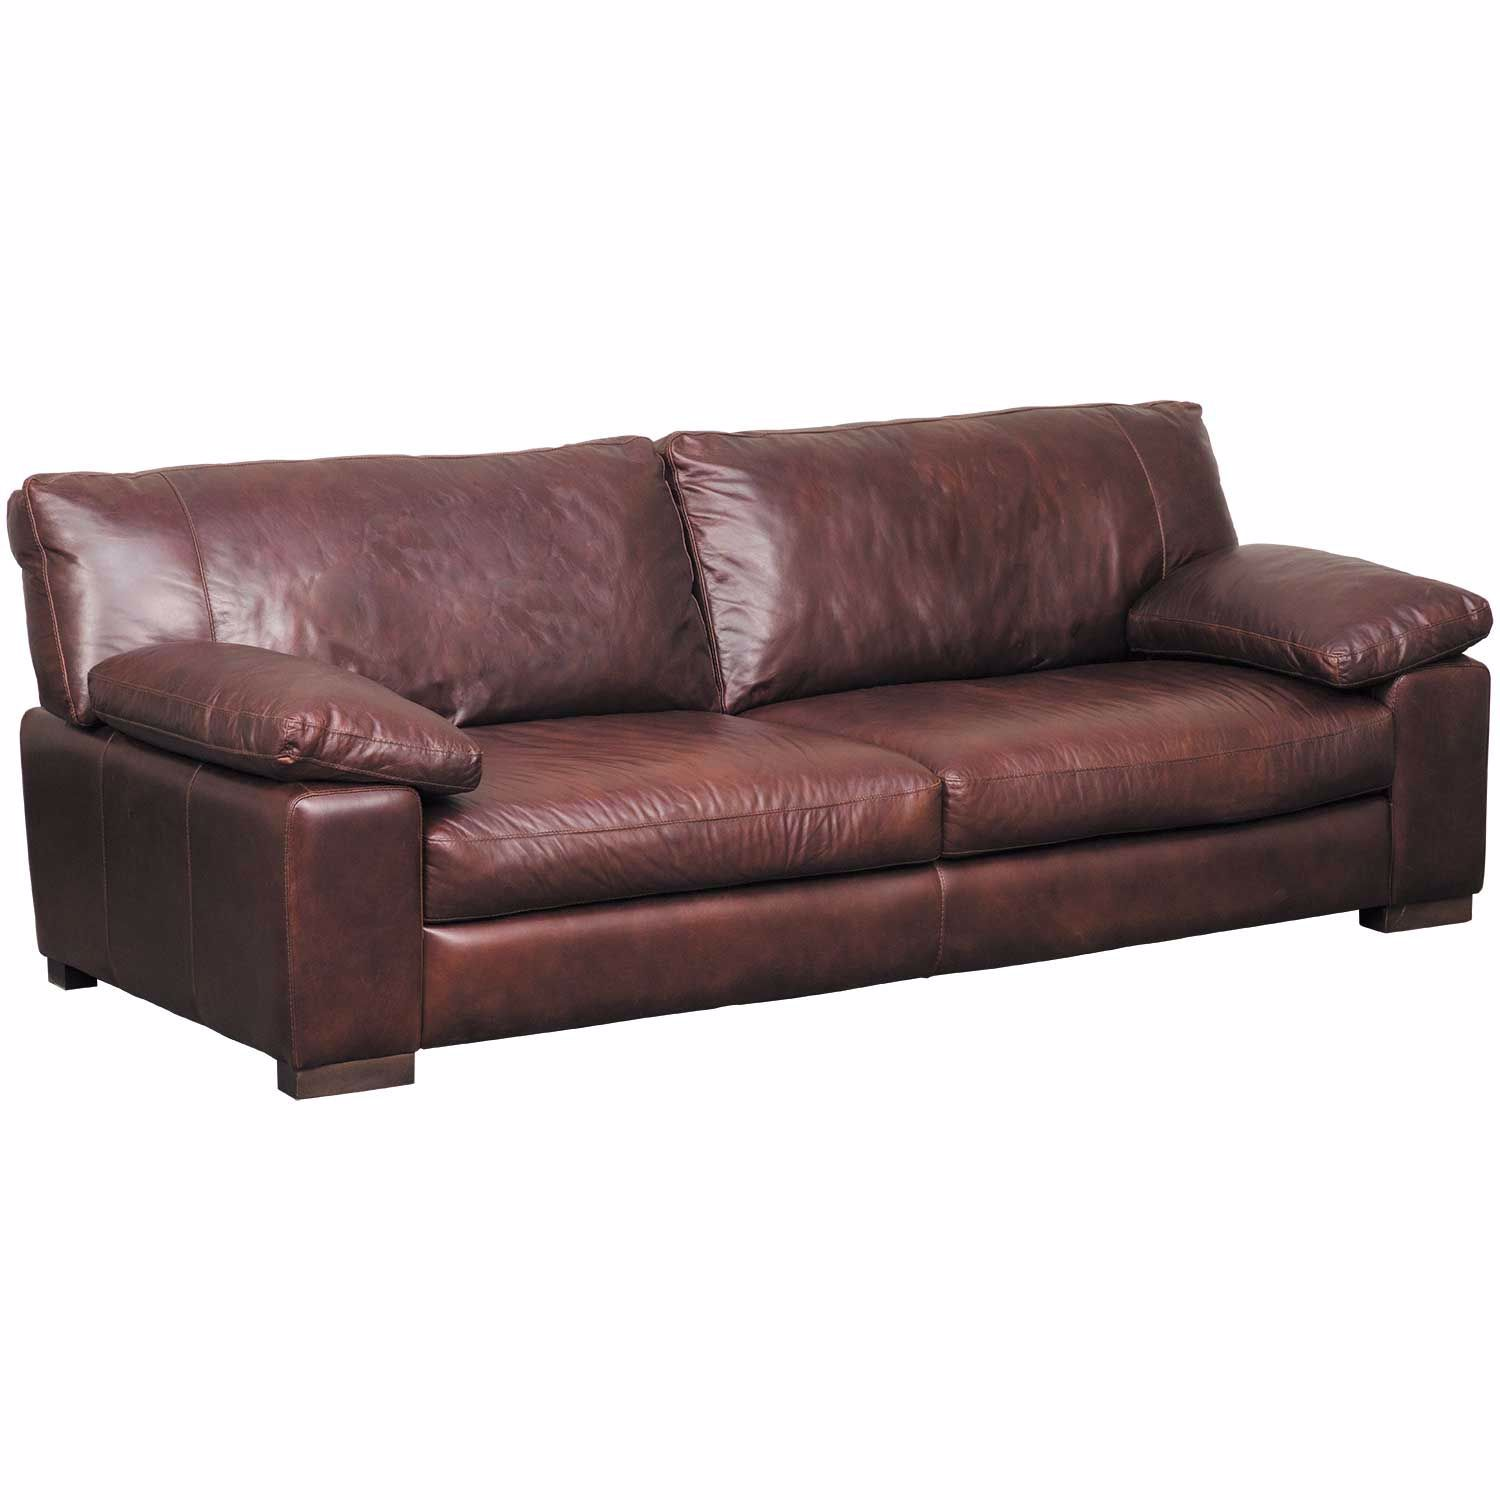 Amazing Barcelona All Leather Sofa Unemploymentrelief Wooden Chair Designs For Living Room Unemploymentrelieforg